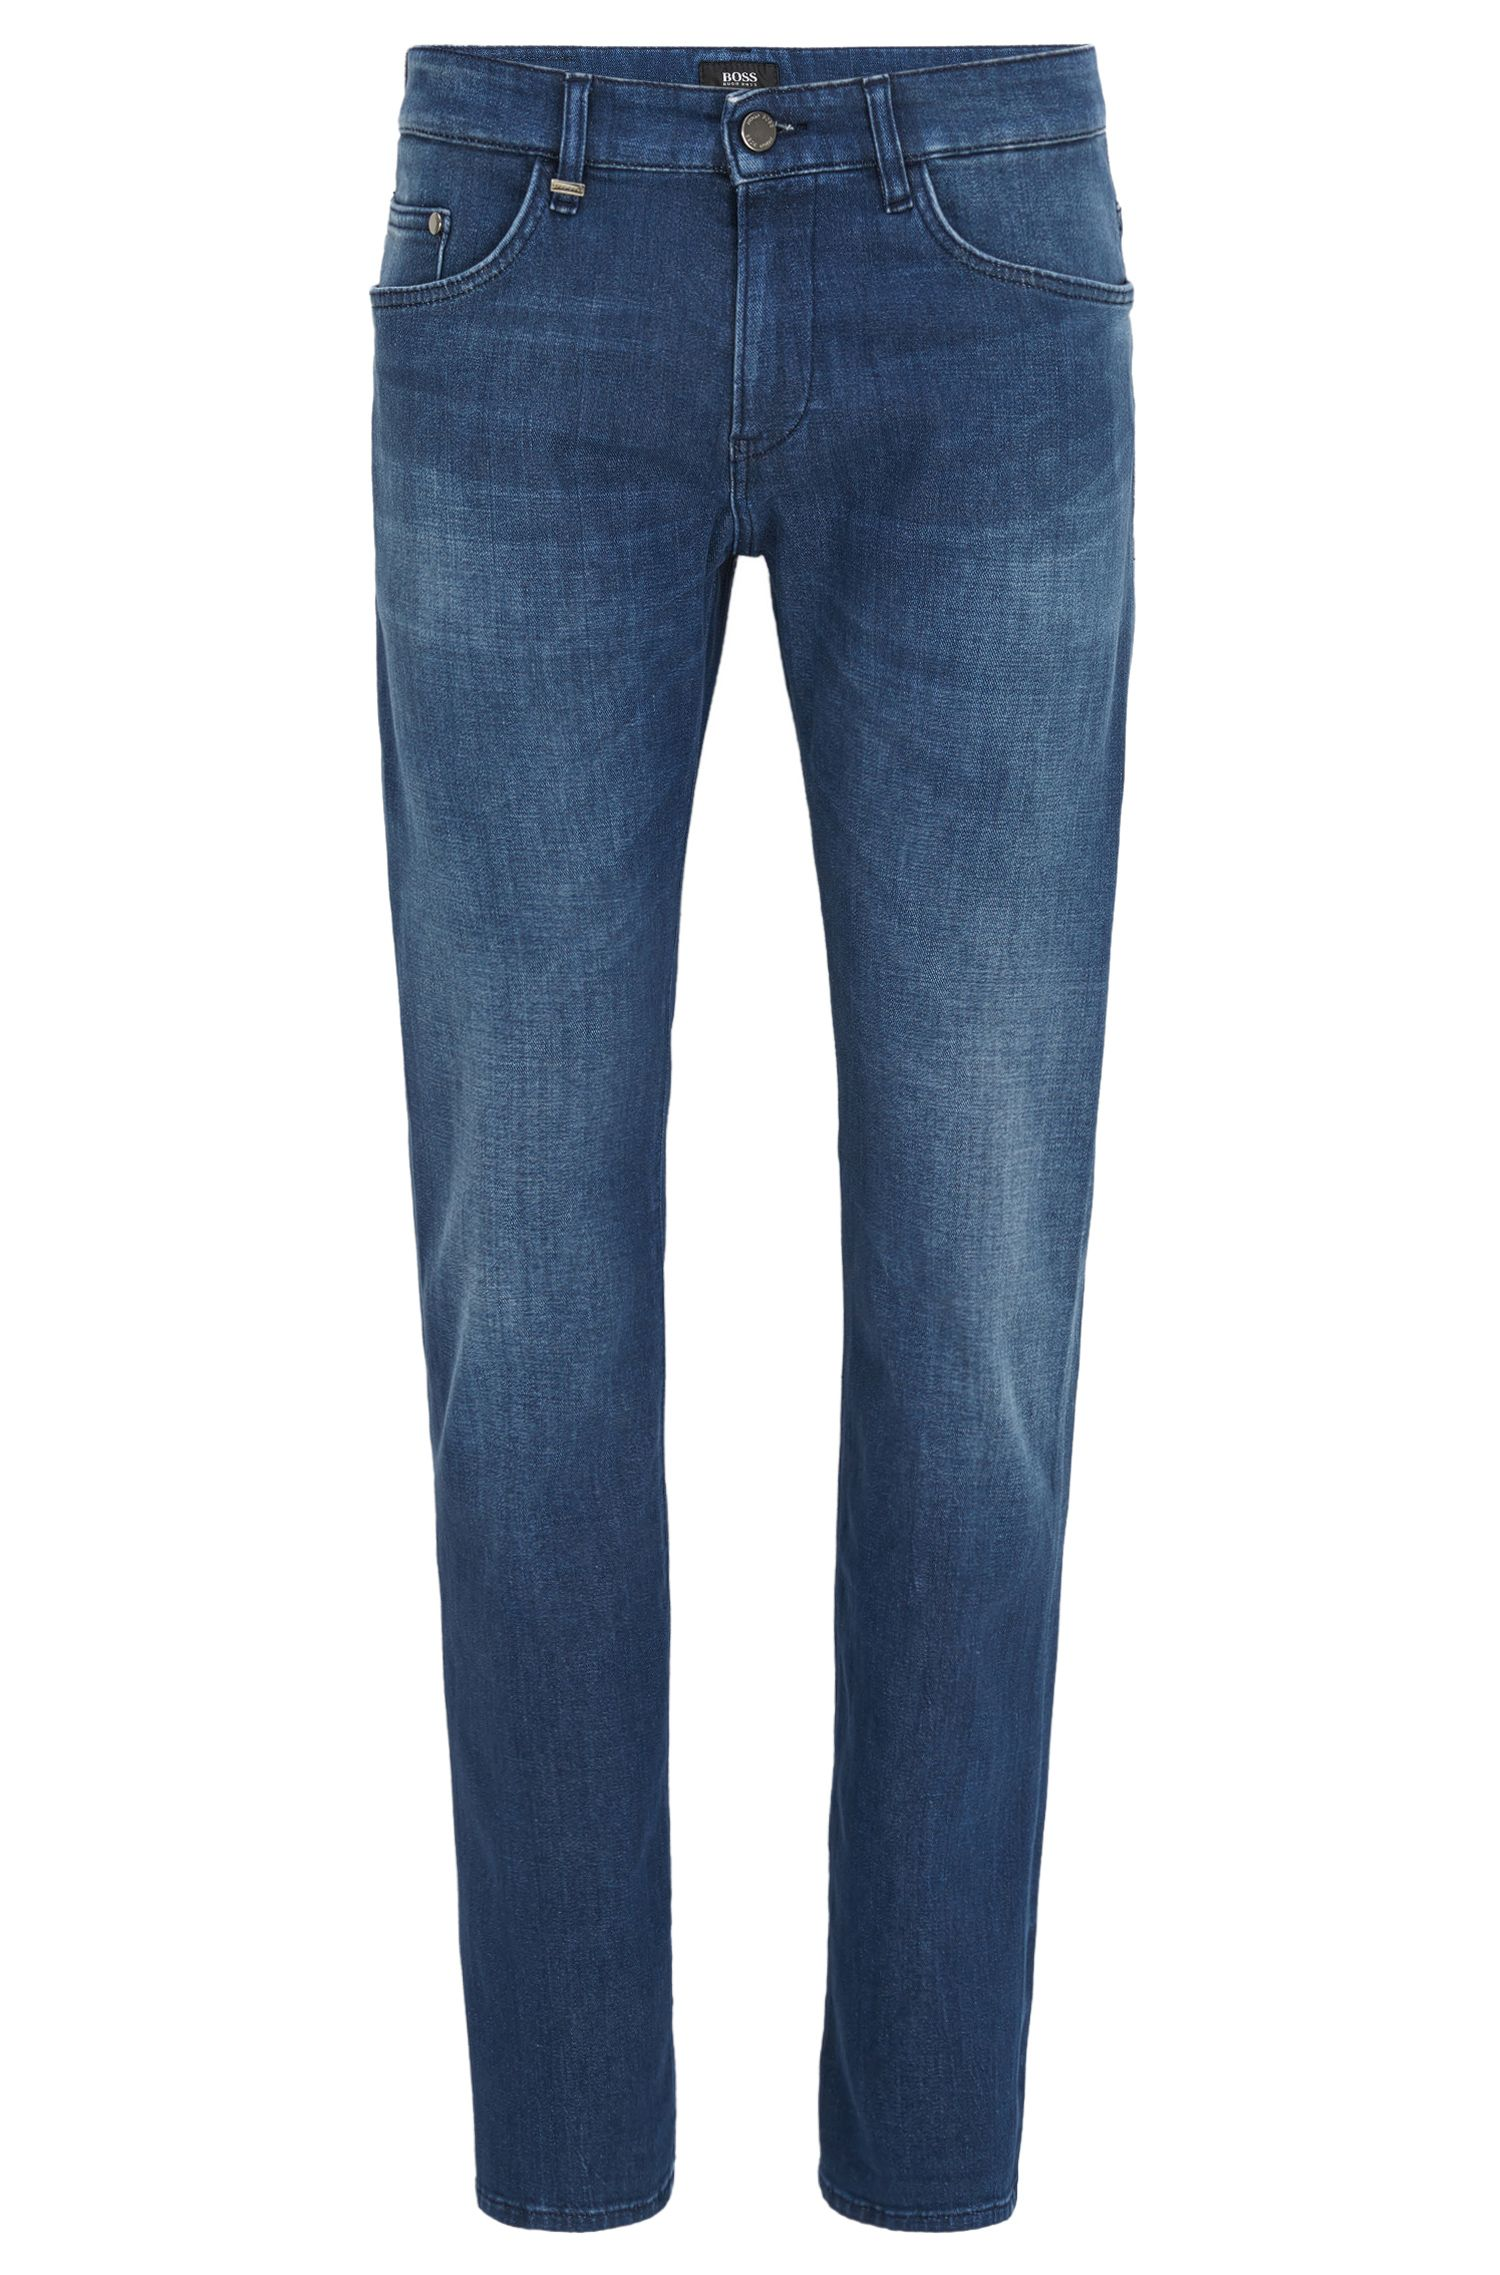 Jeans Slim Fit en denim italien stretch bleu moyen